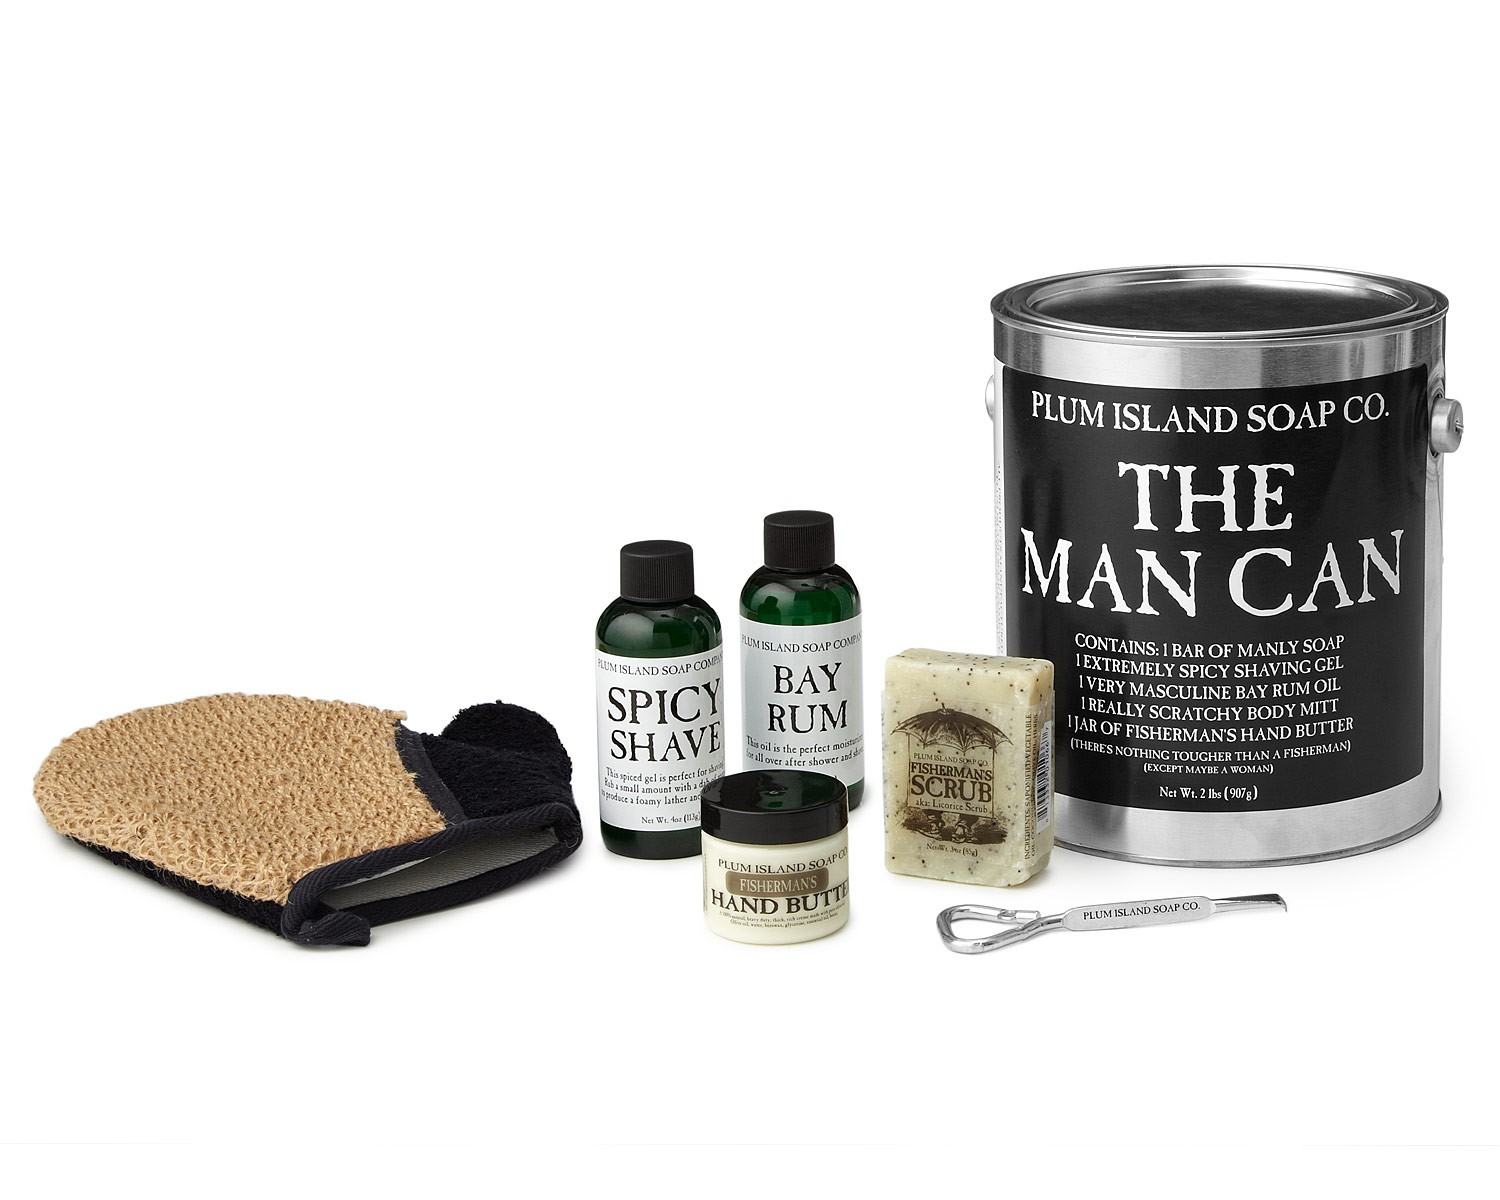 The Man Can // Uncommon Goods